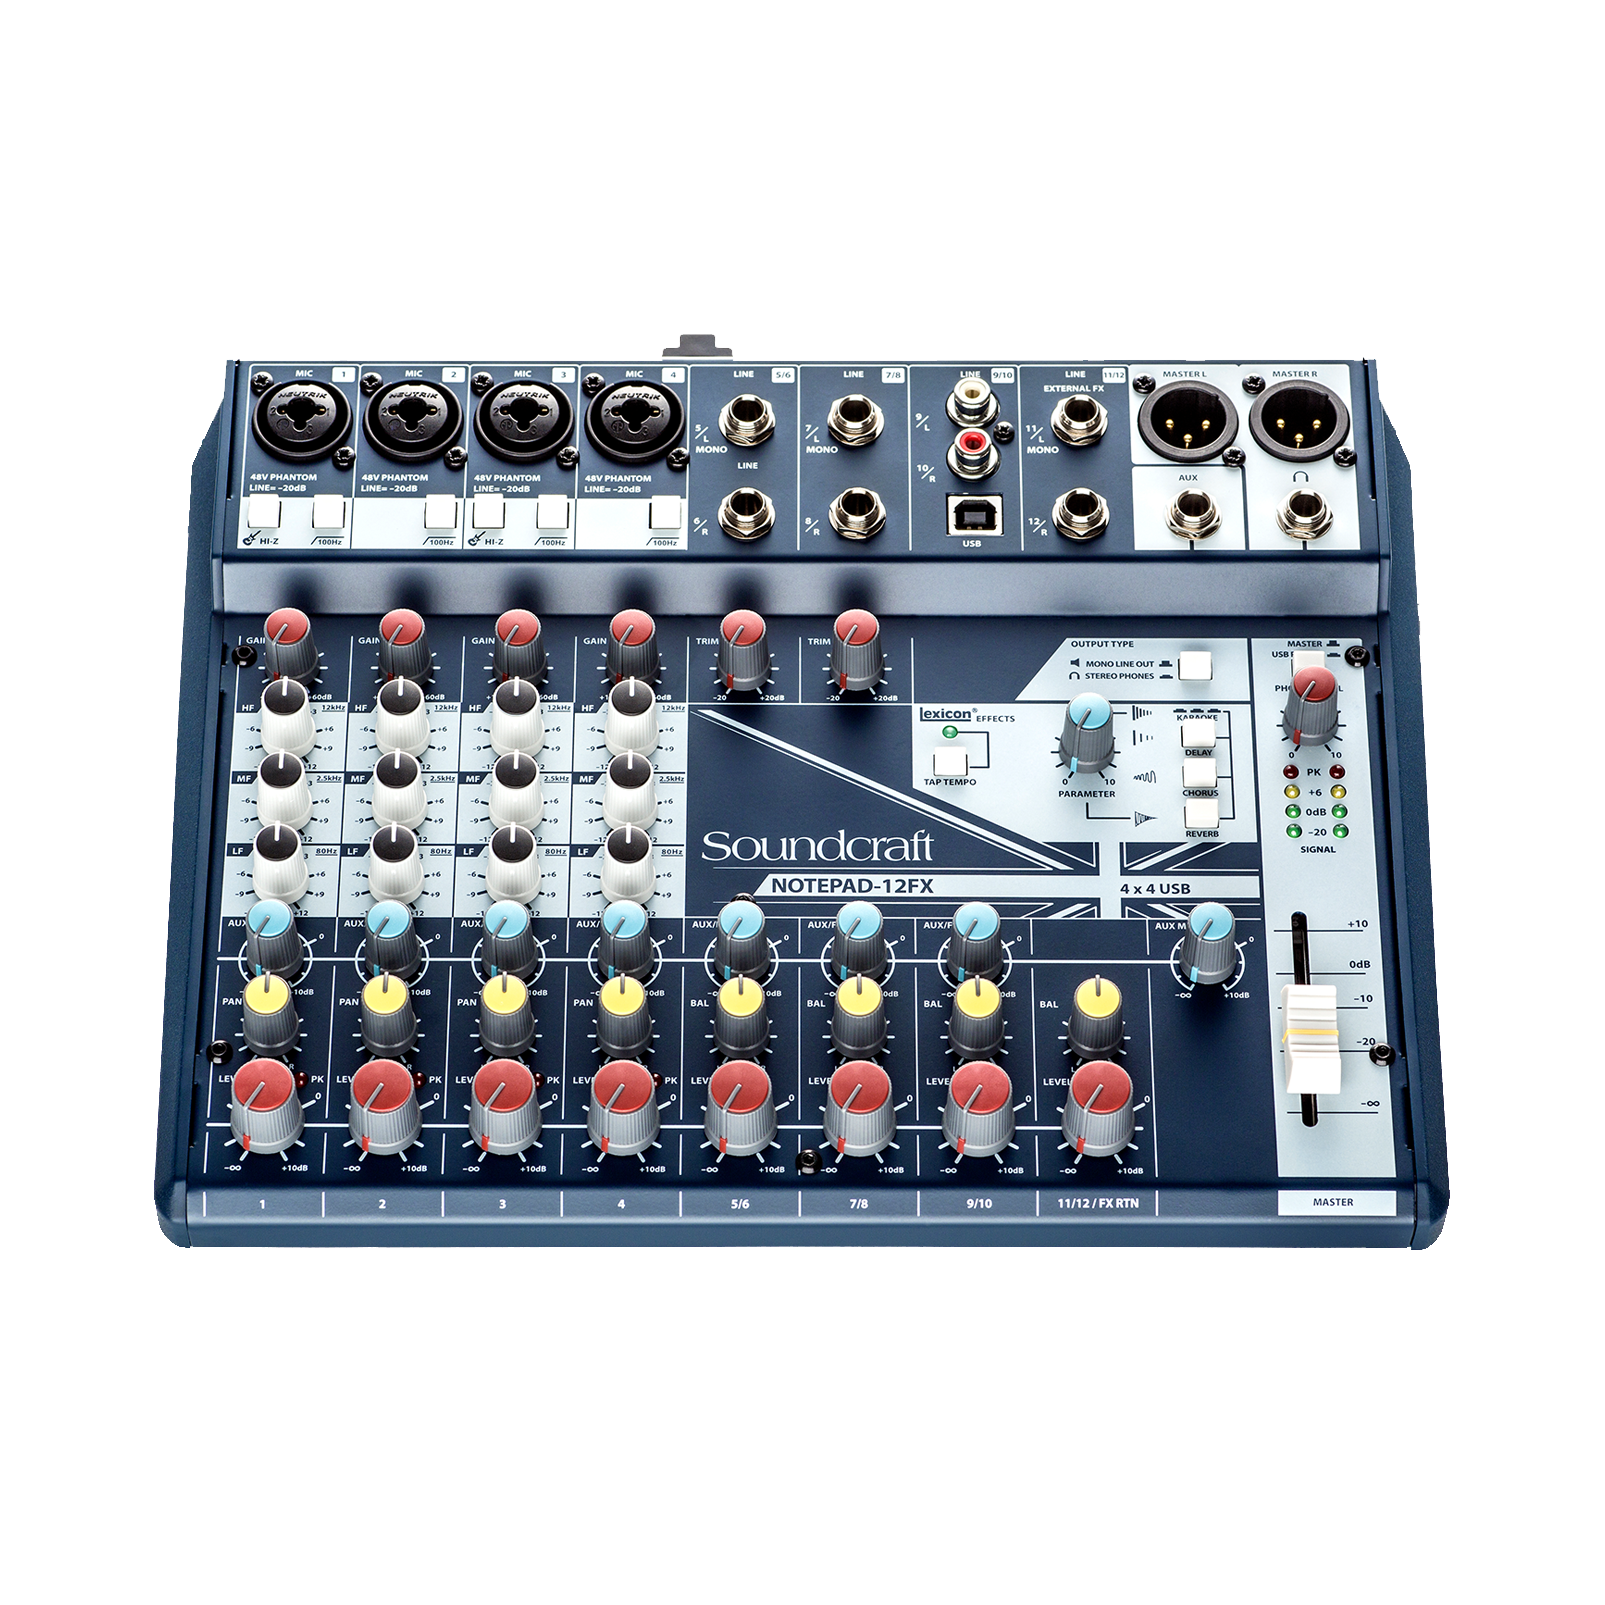 Notepad-12FX - Dark Blue - Small-format analog mixing console with USB I/O and Lexicon effects - Detailshot 3